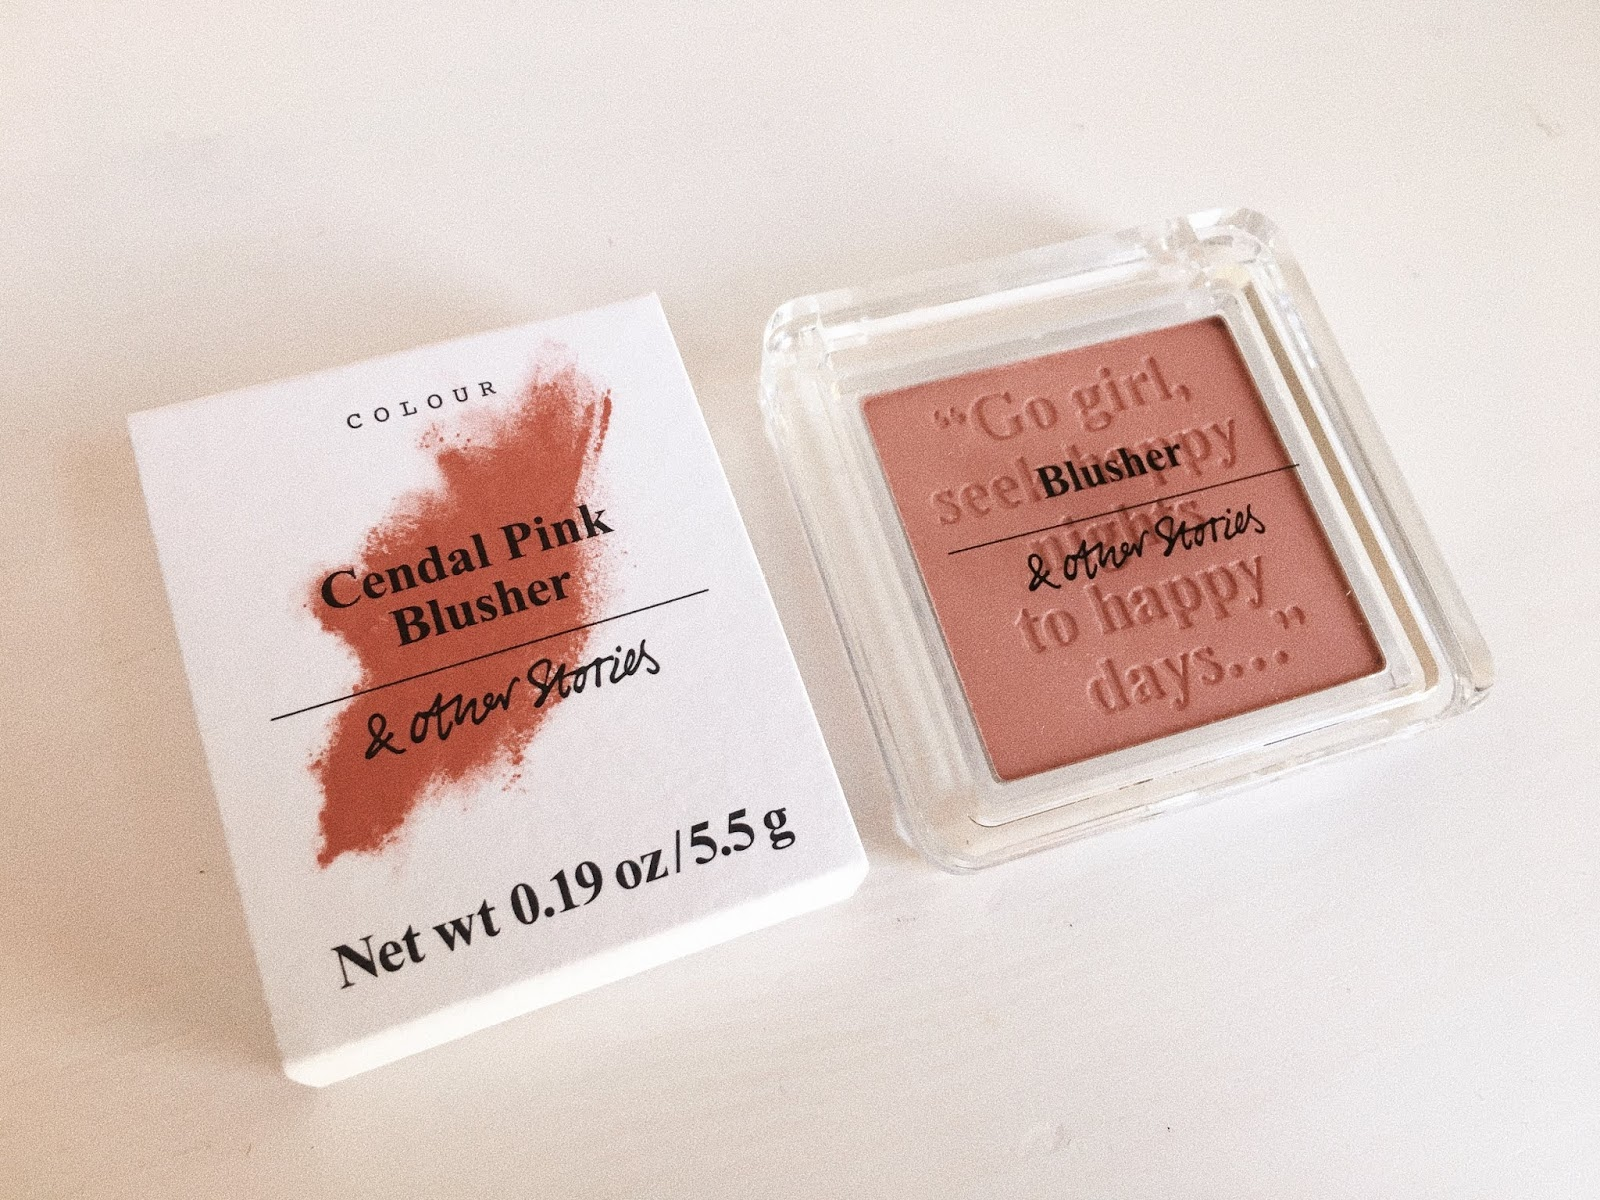 & Other Stories Cendal Pink Blusher Review